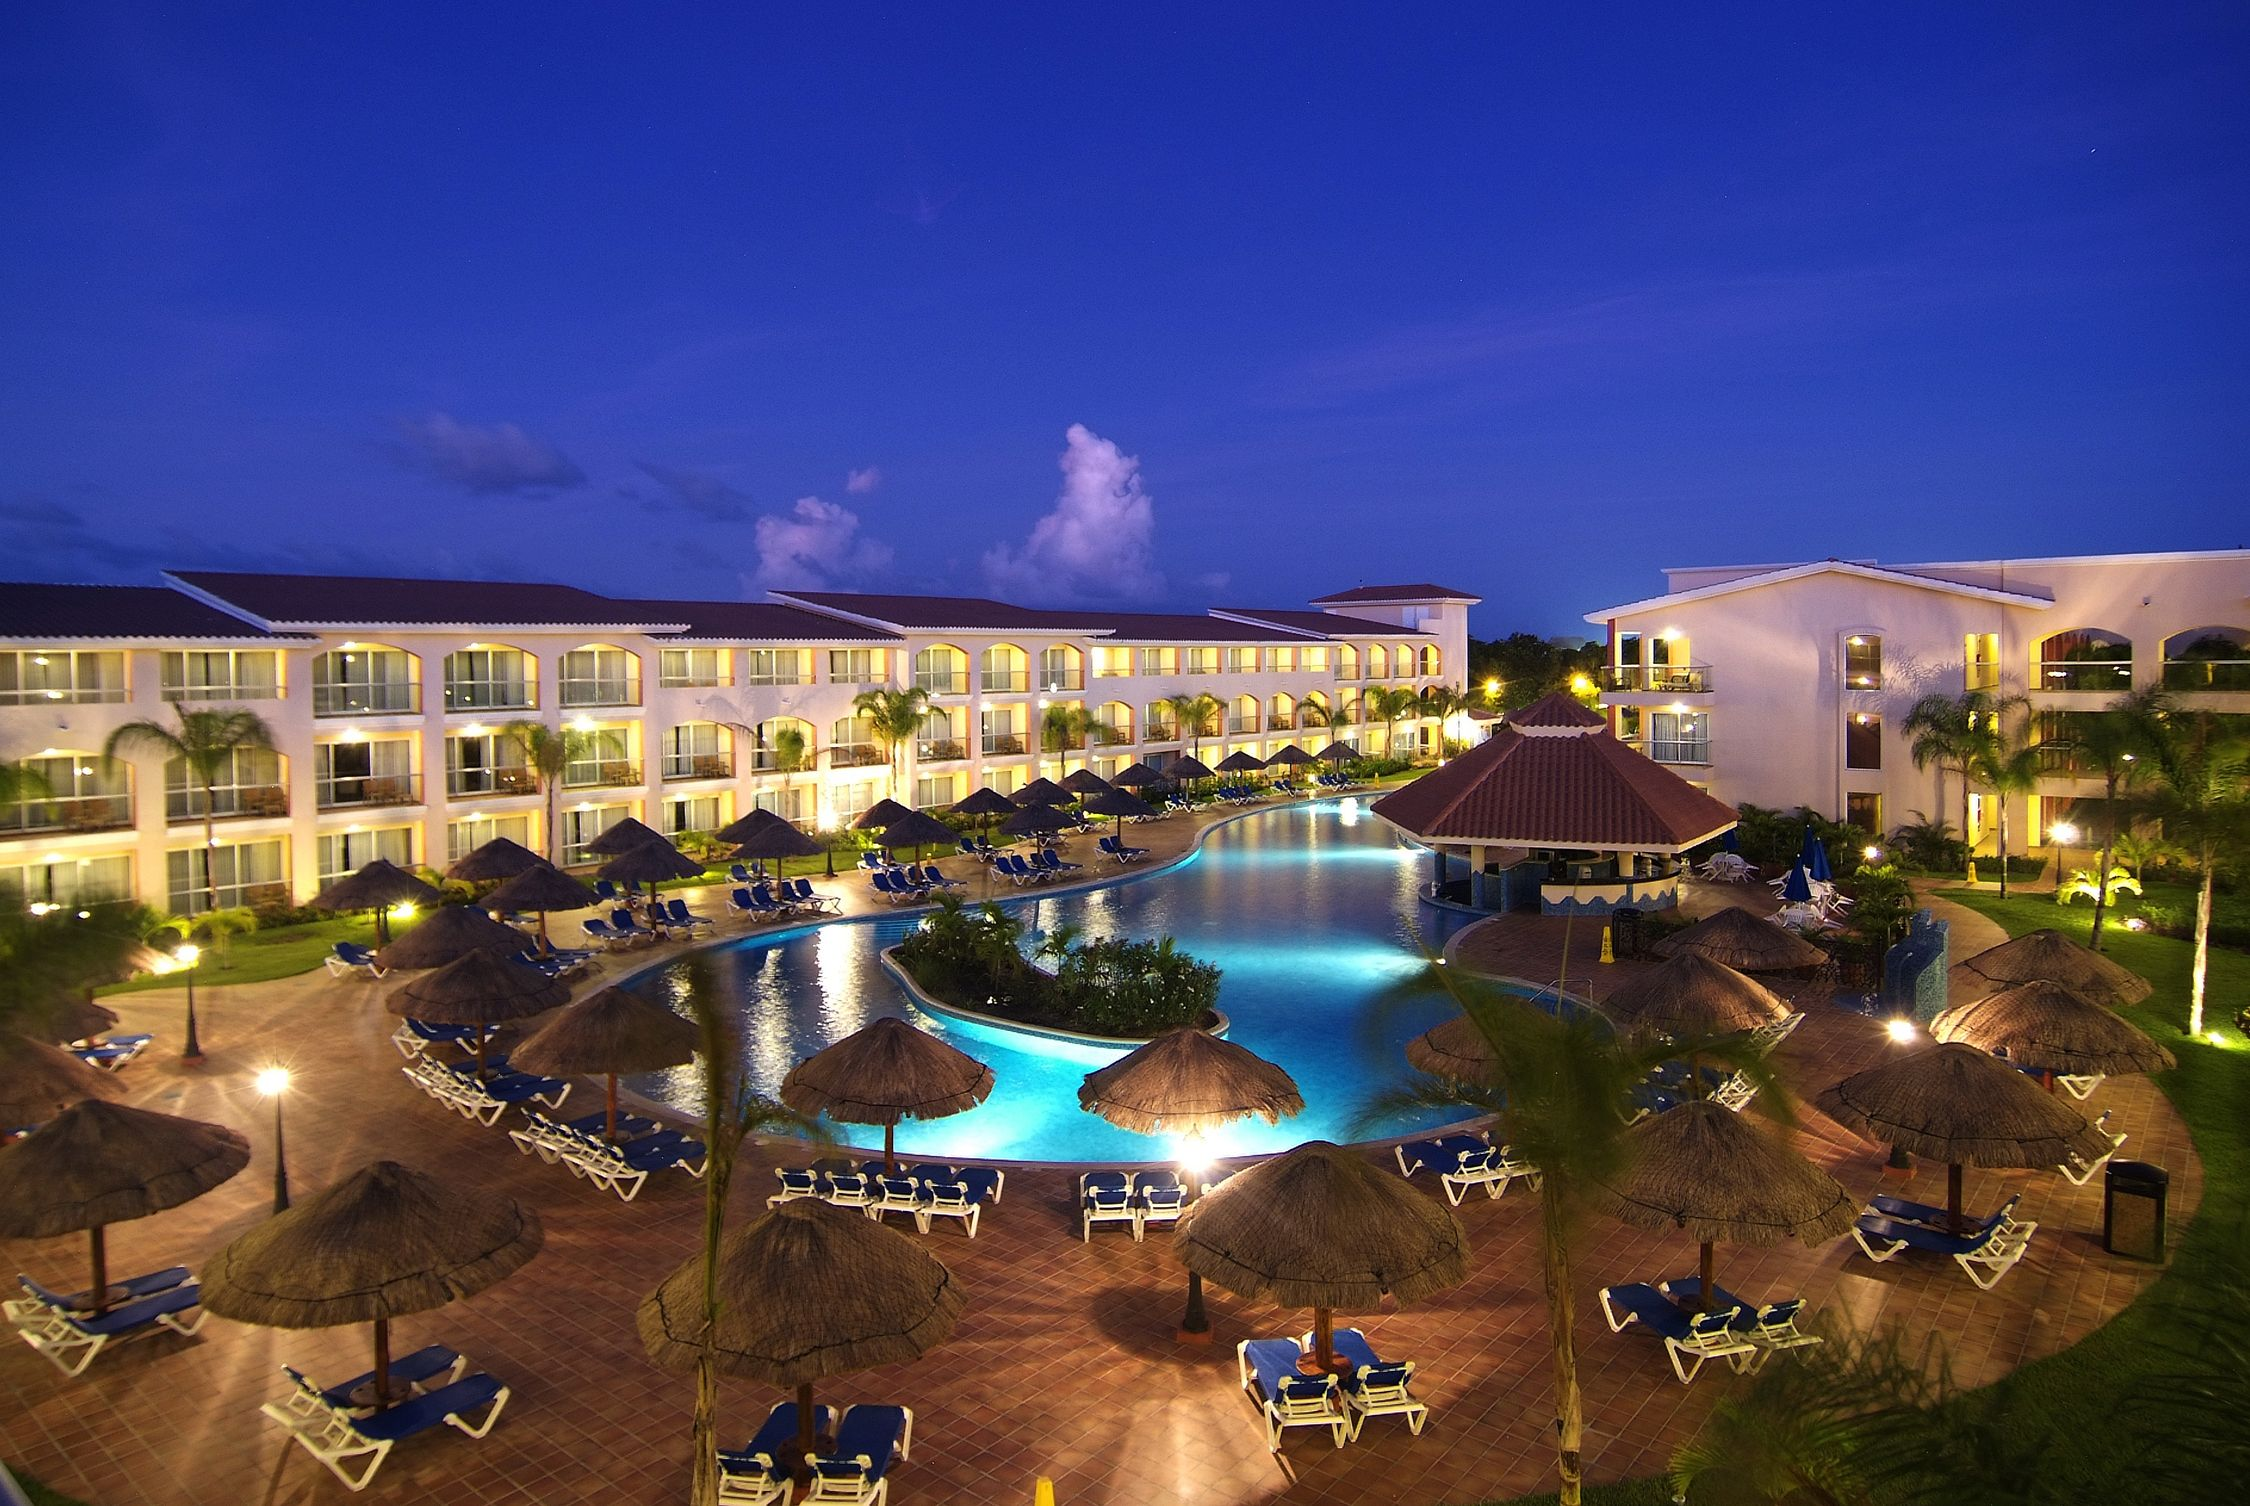 Rivera Pool view of the pool at at the sandos playacar resort spa in the